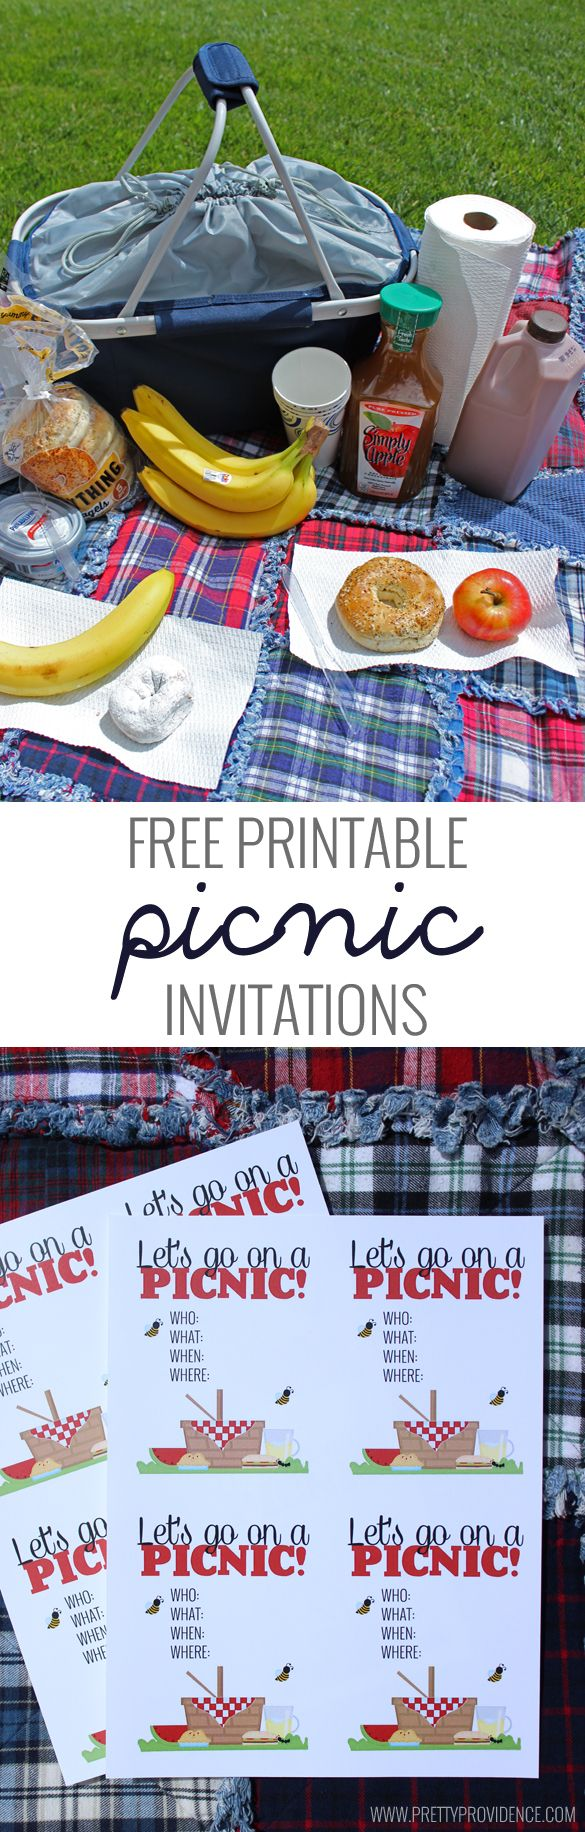 """I love this """"surprise"""" picnic idea! The free printable picnic invites are super cute too. Great way to get together with friends with minimal cost and mess! #celebratefamilyvalues #ad"""